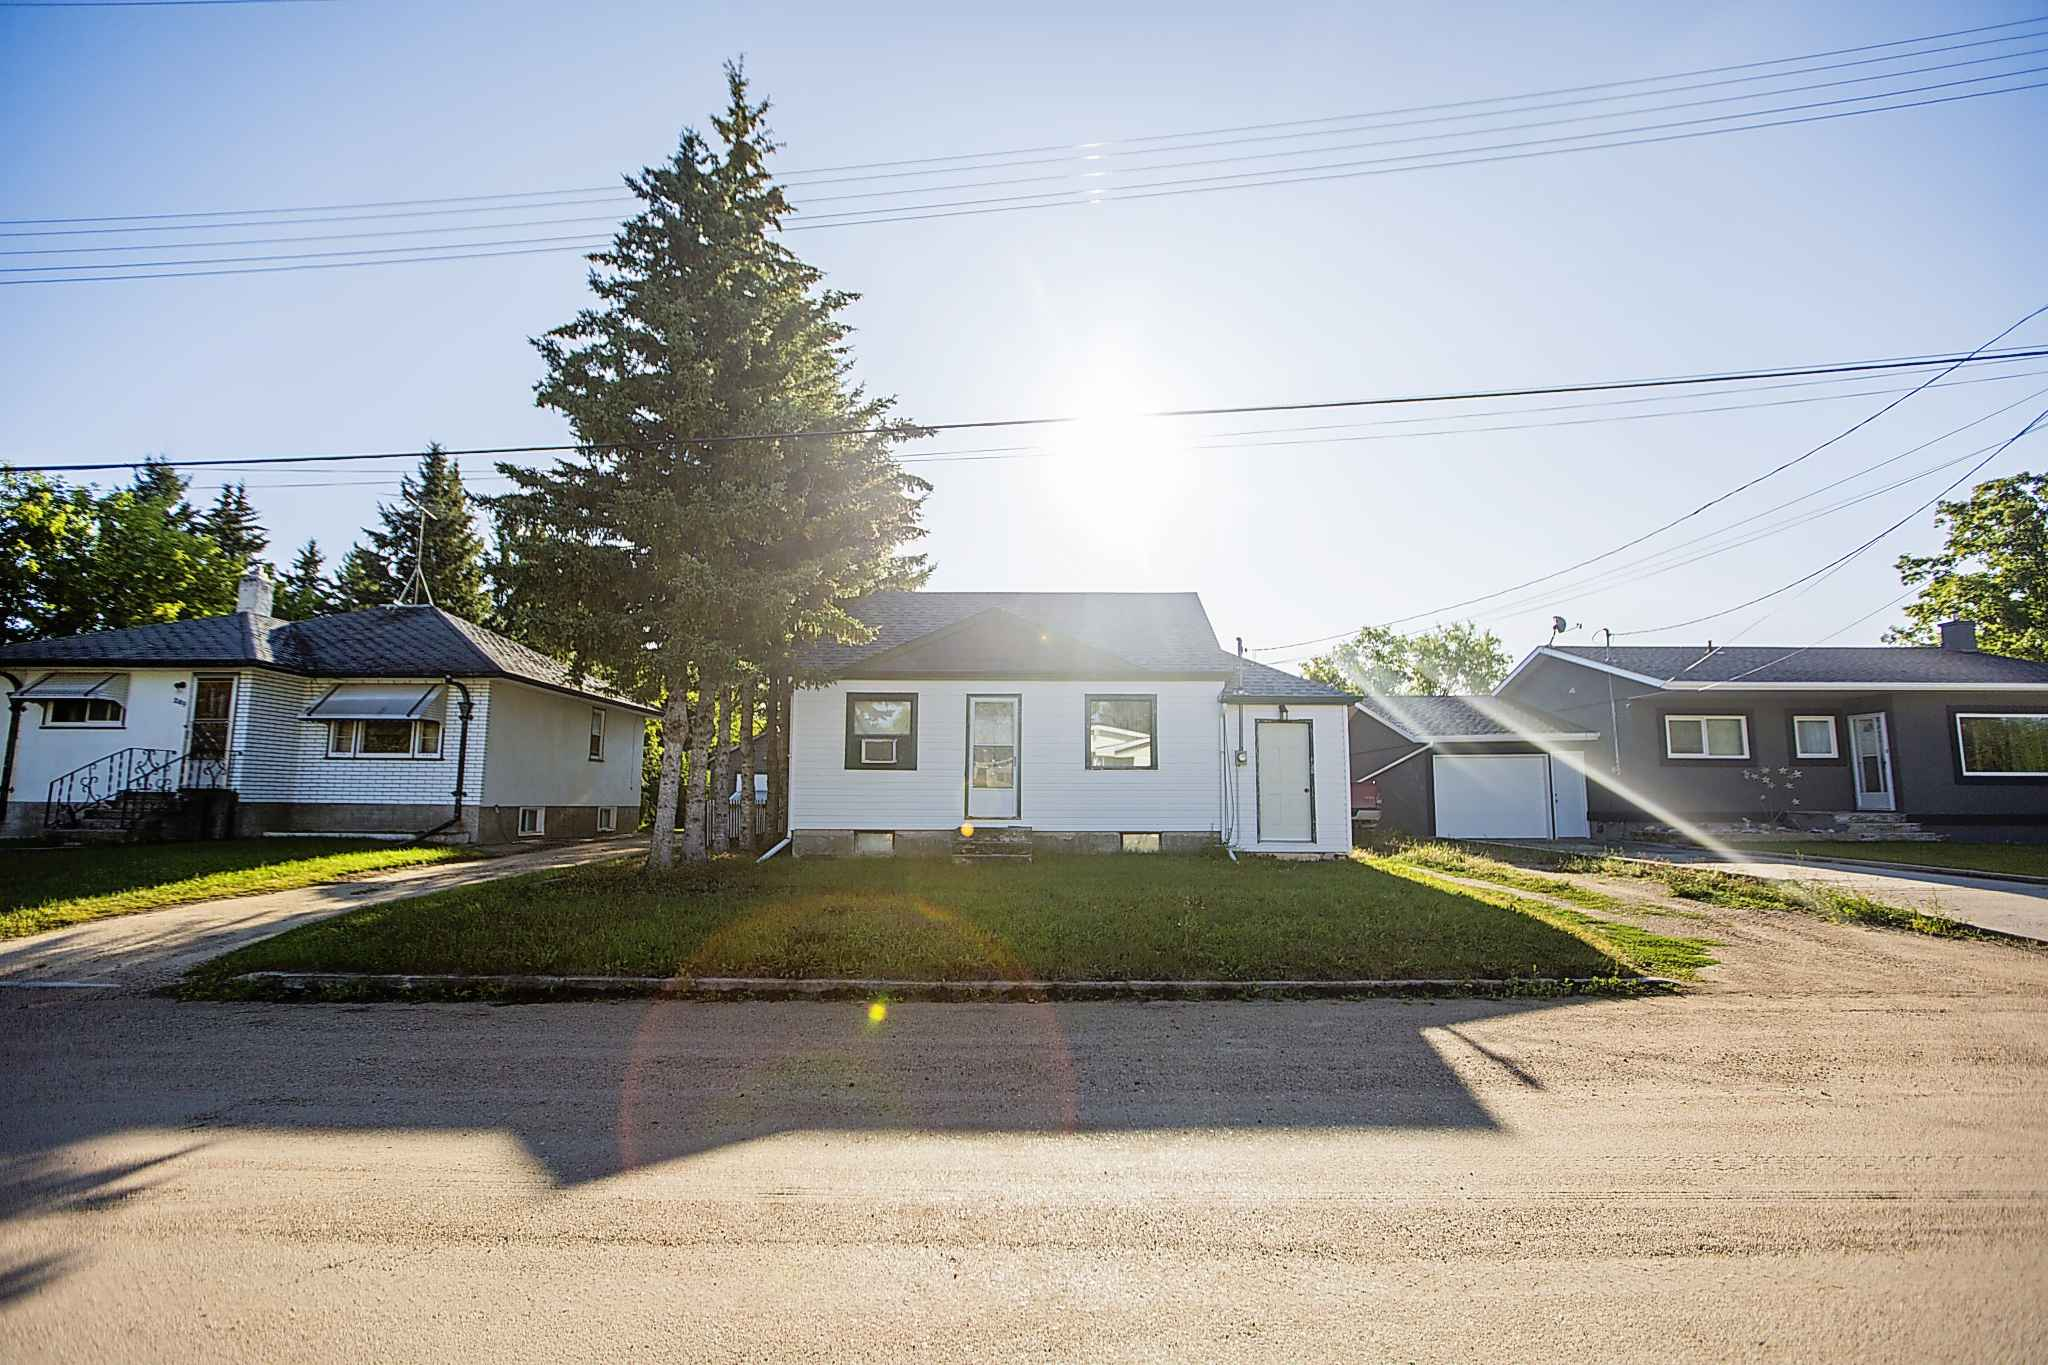 Before he fled to the United States, Mathews lived in this small house in Beausejour. (Mikaela MacKenzie / Winnipeg Free Press Files)